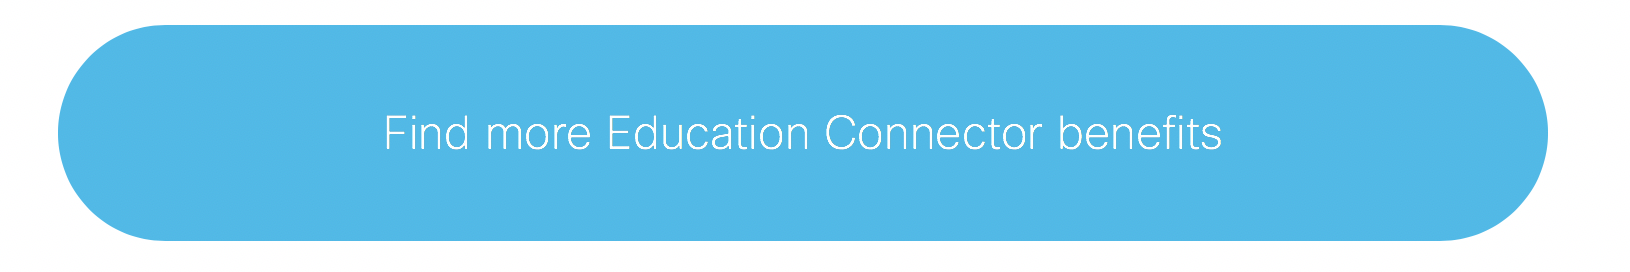 Find more Education Connector benefits